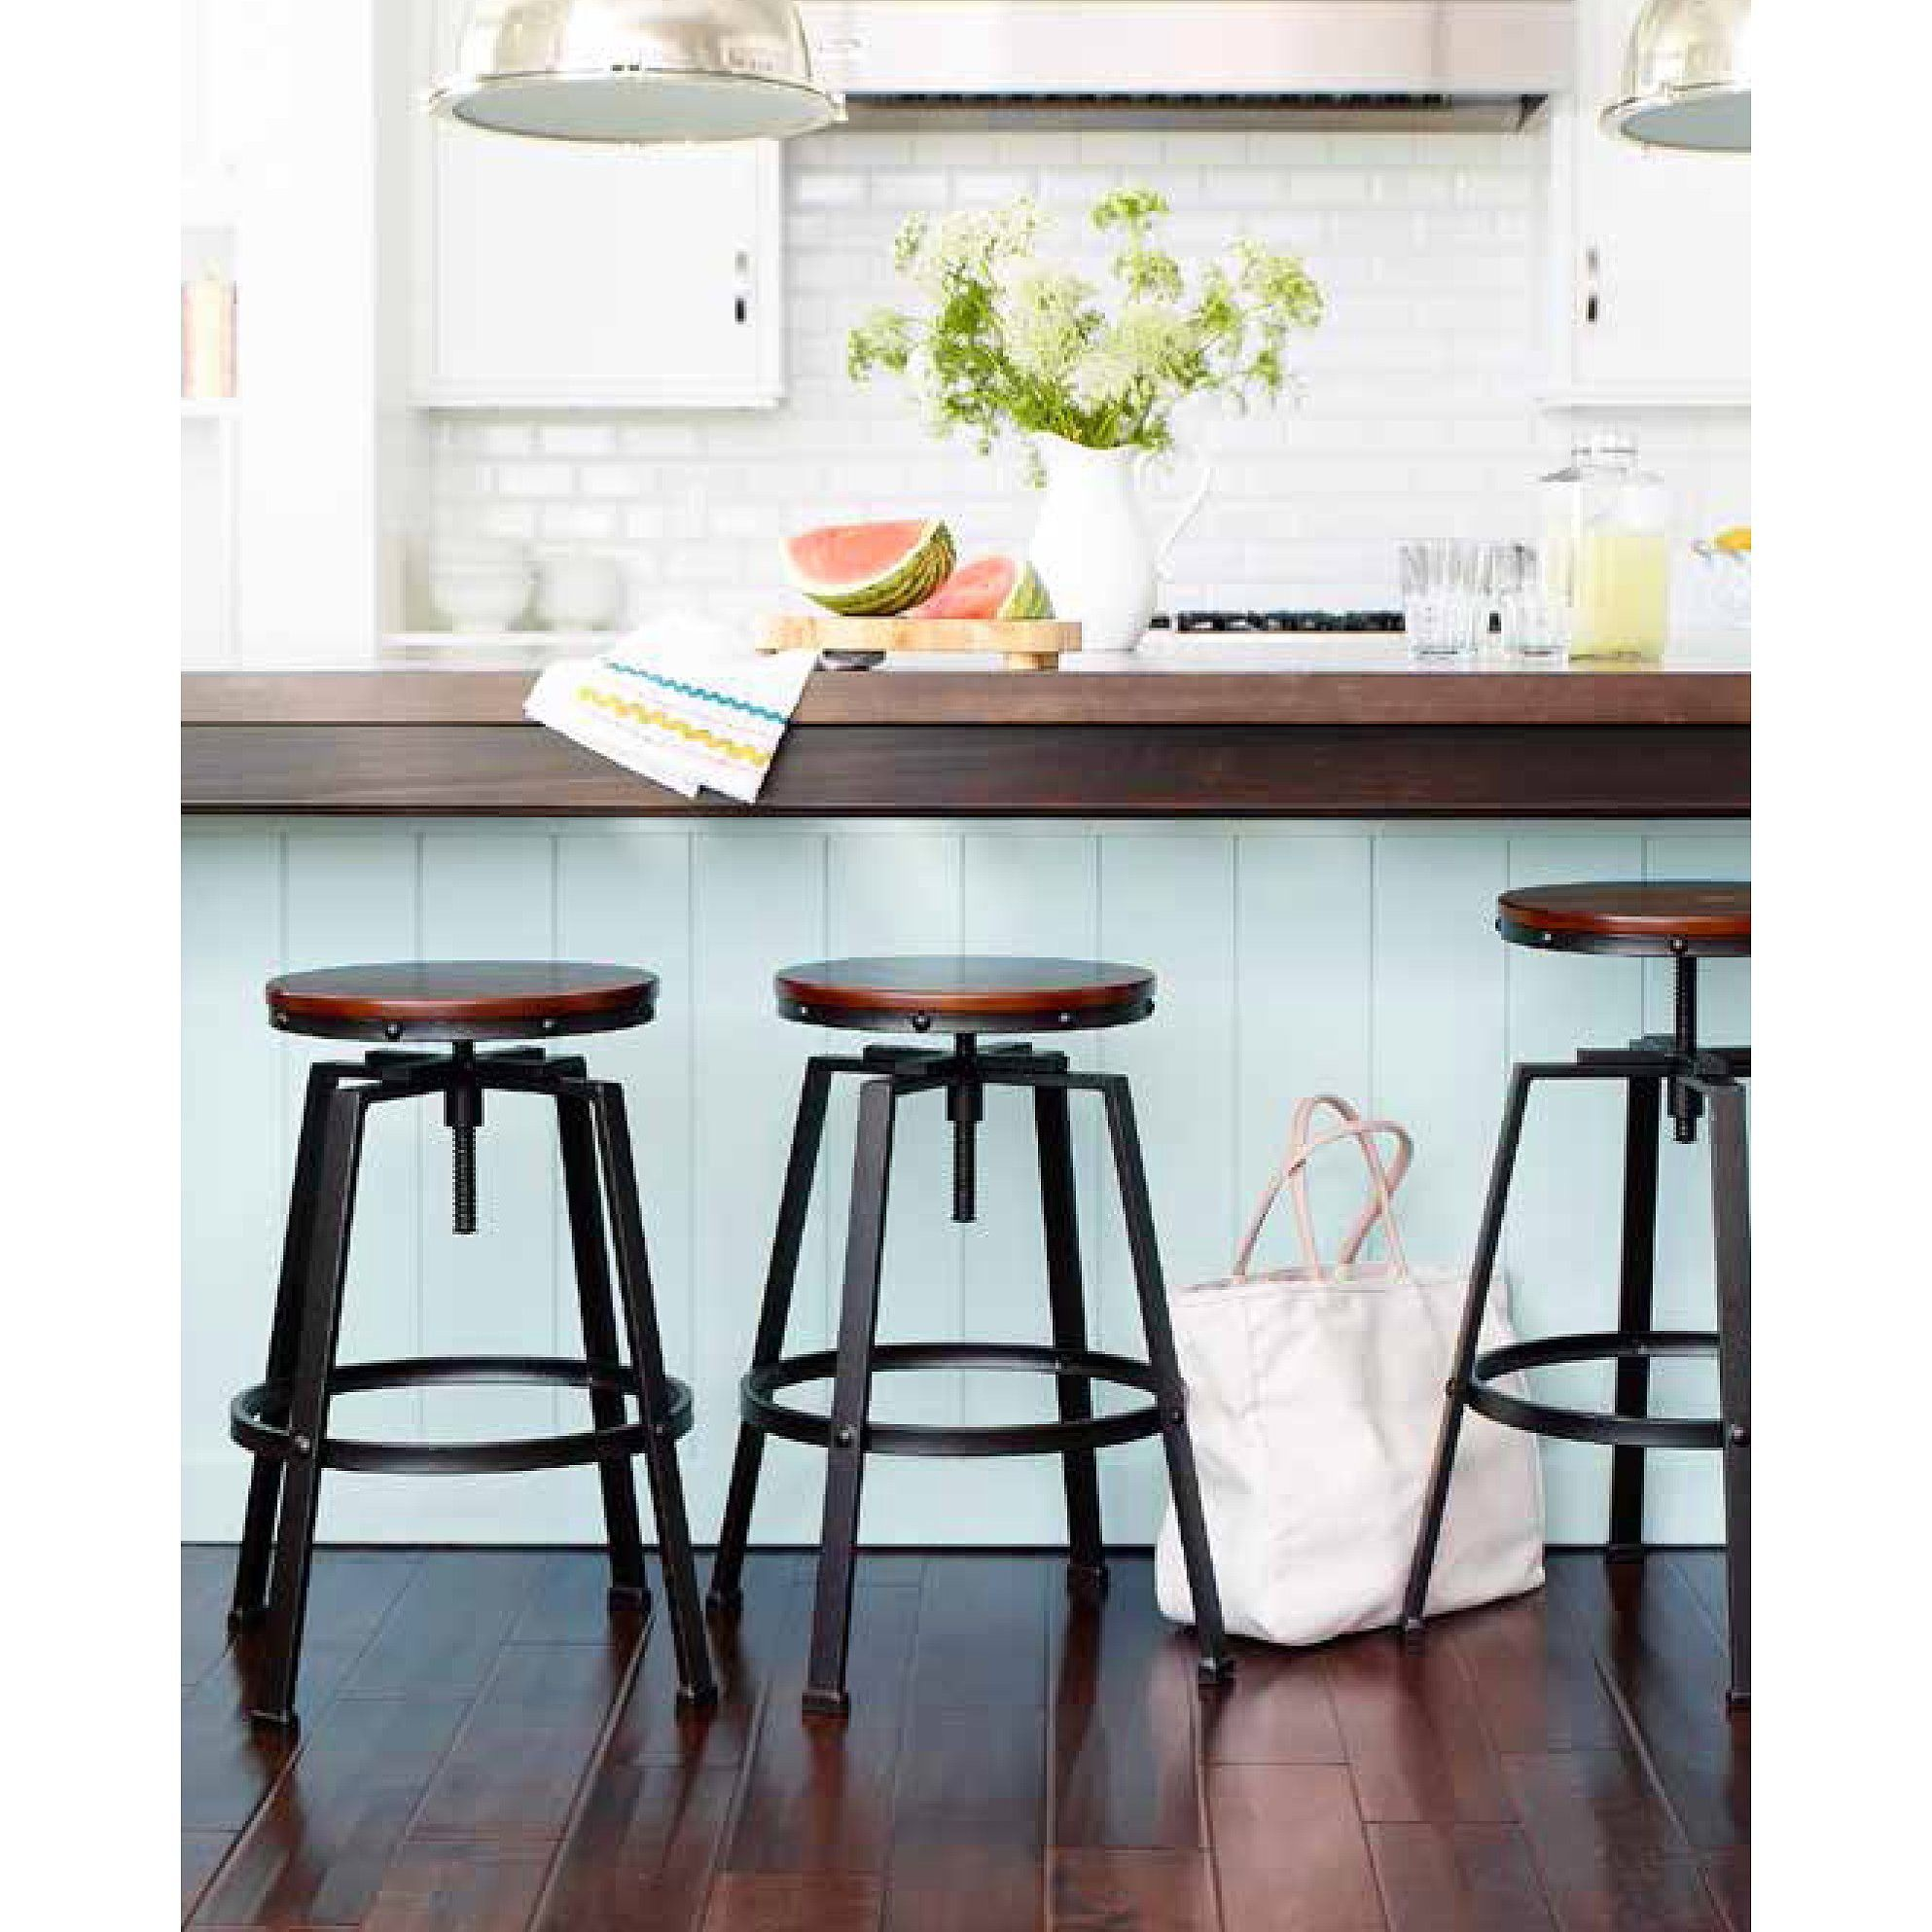 Kitchen Tables With Stools: The Lewiston Adjustable Height Swivel Stool Has A Modern